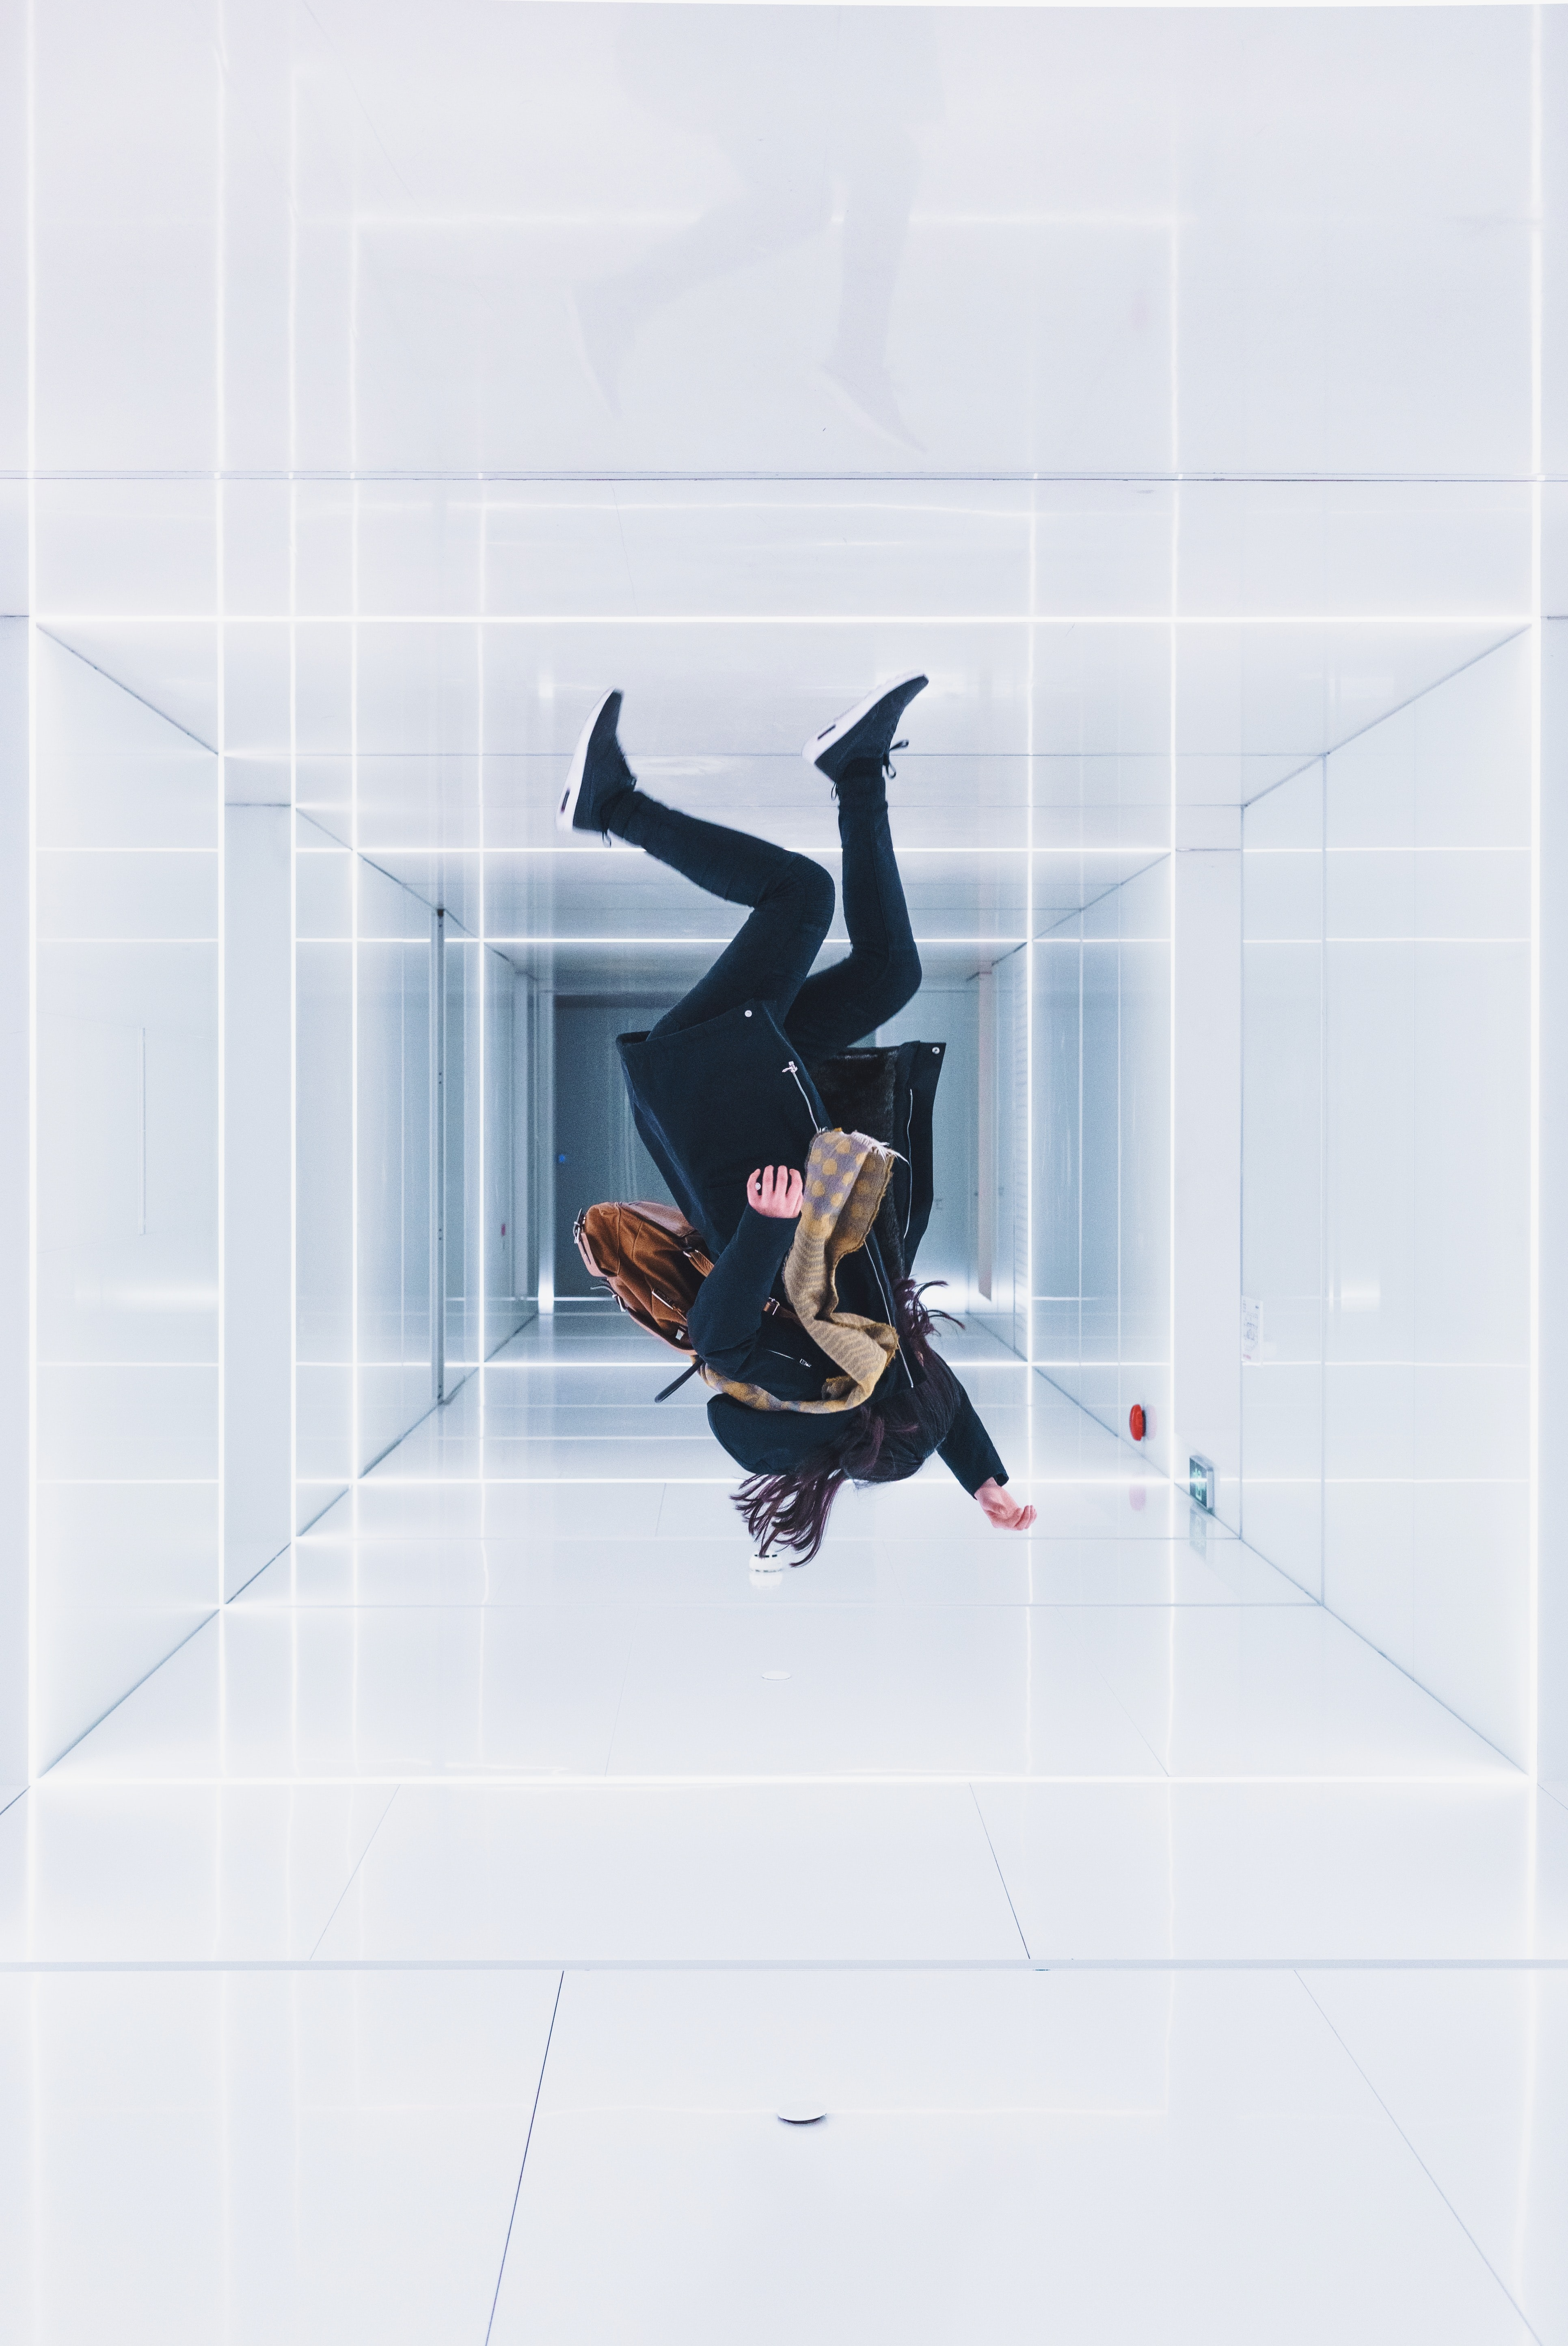 Optical illusion of a person jumping upside down in a white walled room